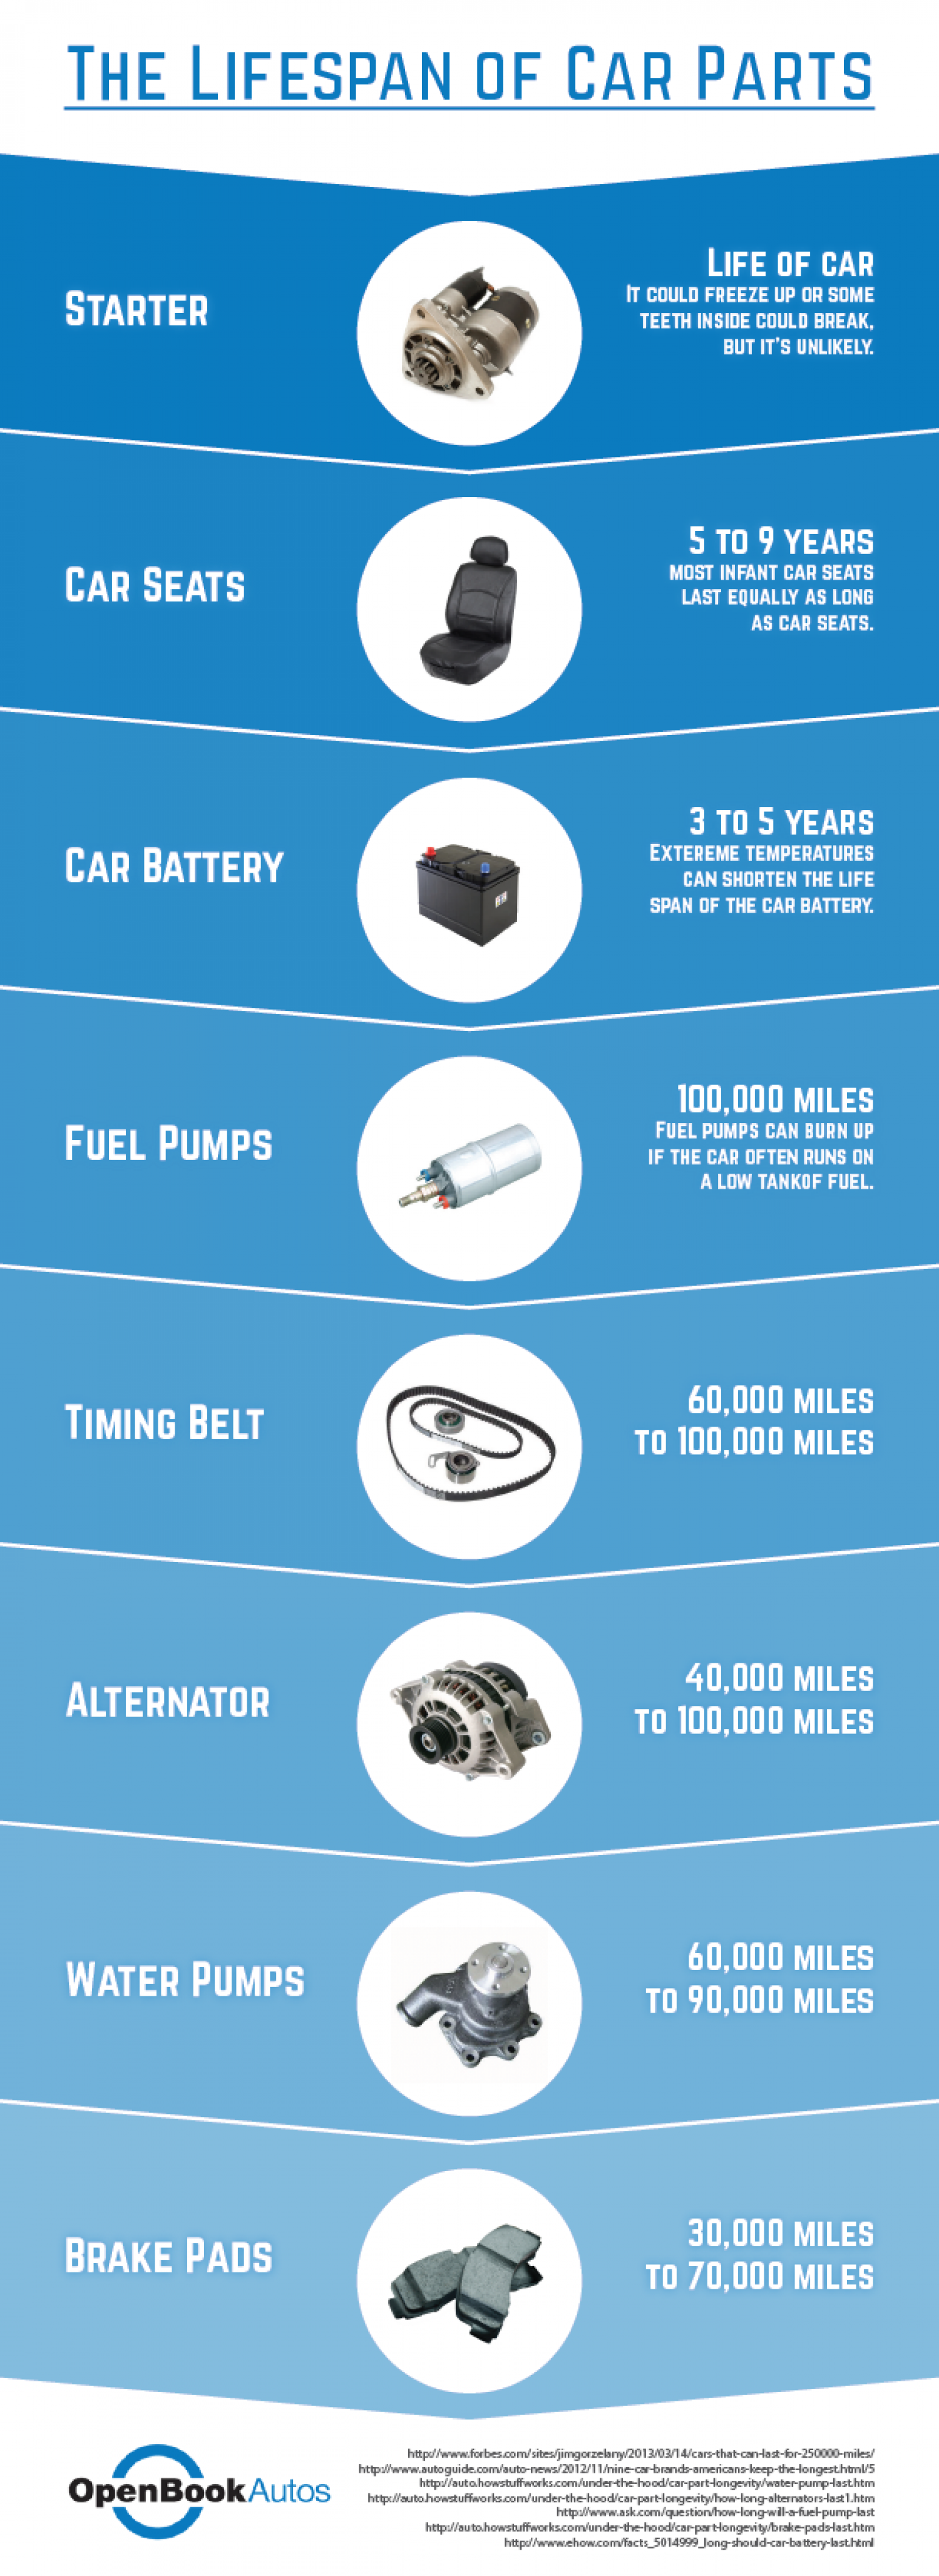 Lifespan of Car Parts Infographic